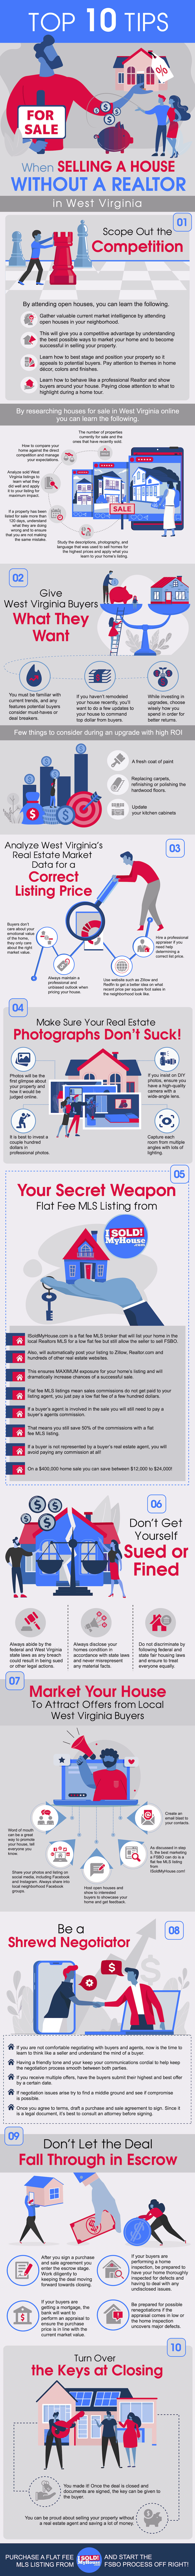 infographic of the 10 steps to sell a house in west virginia without an agent